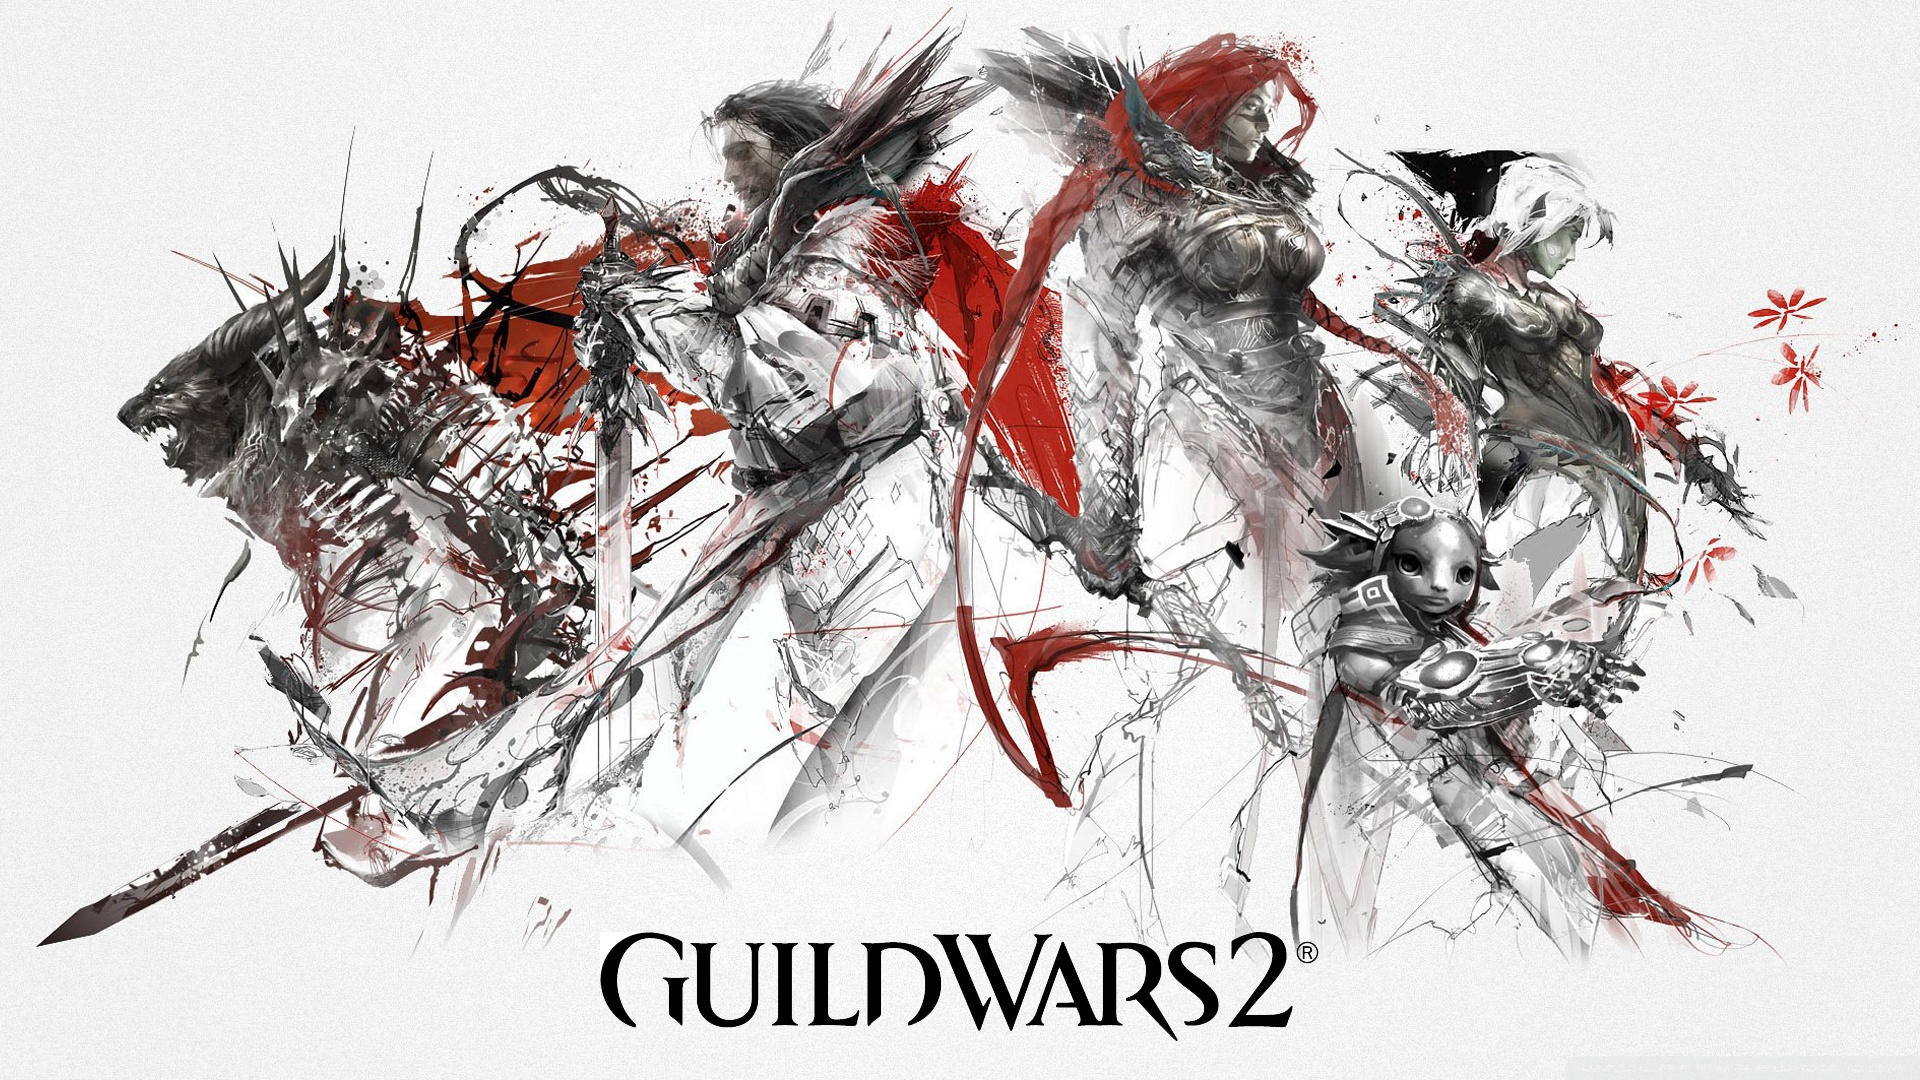 gw2 dating Ncsoft and arenanet unleashed another guild wars 2 demo at pax east,  honoring the norn race and the previously unveiled thief and.